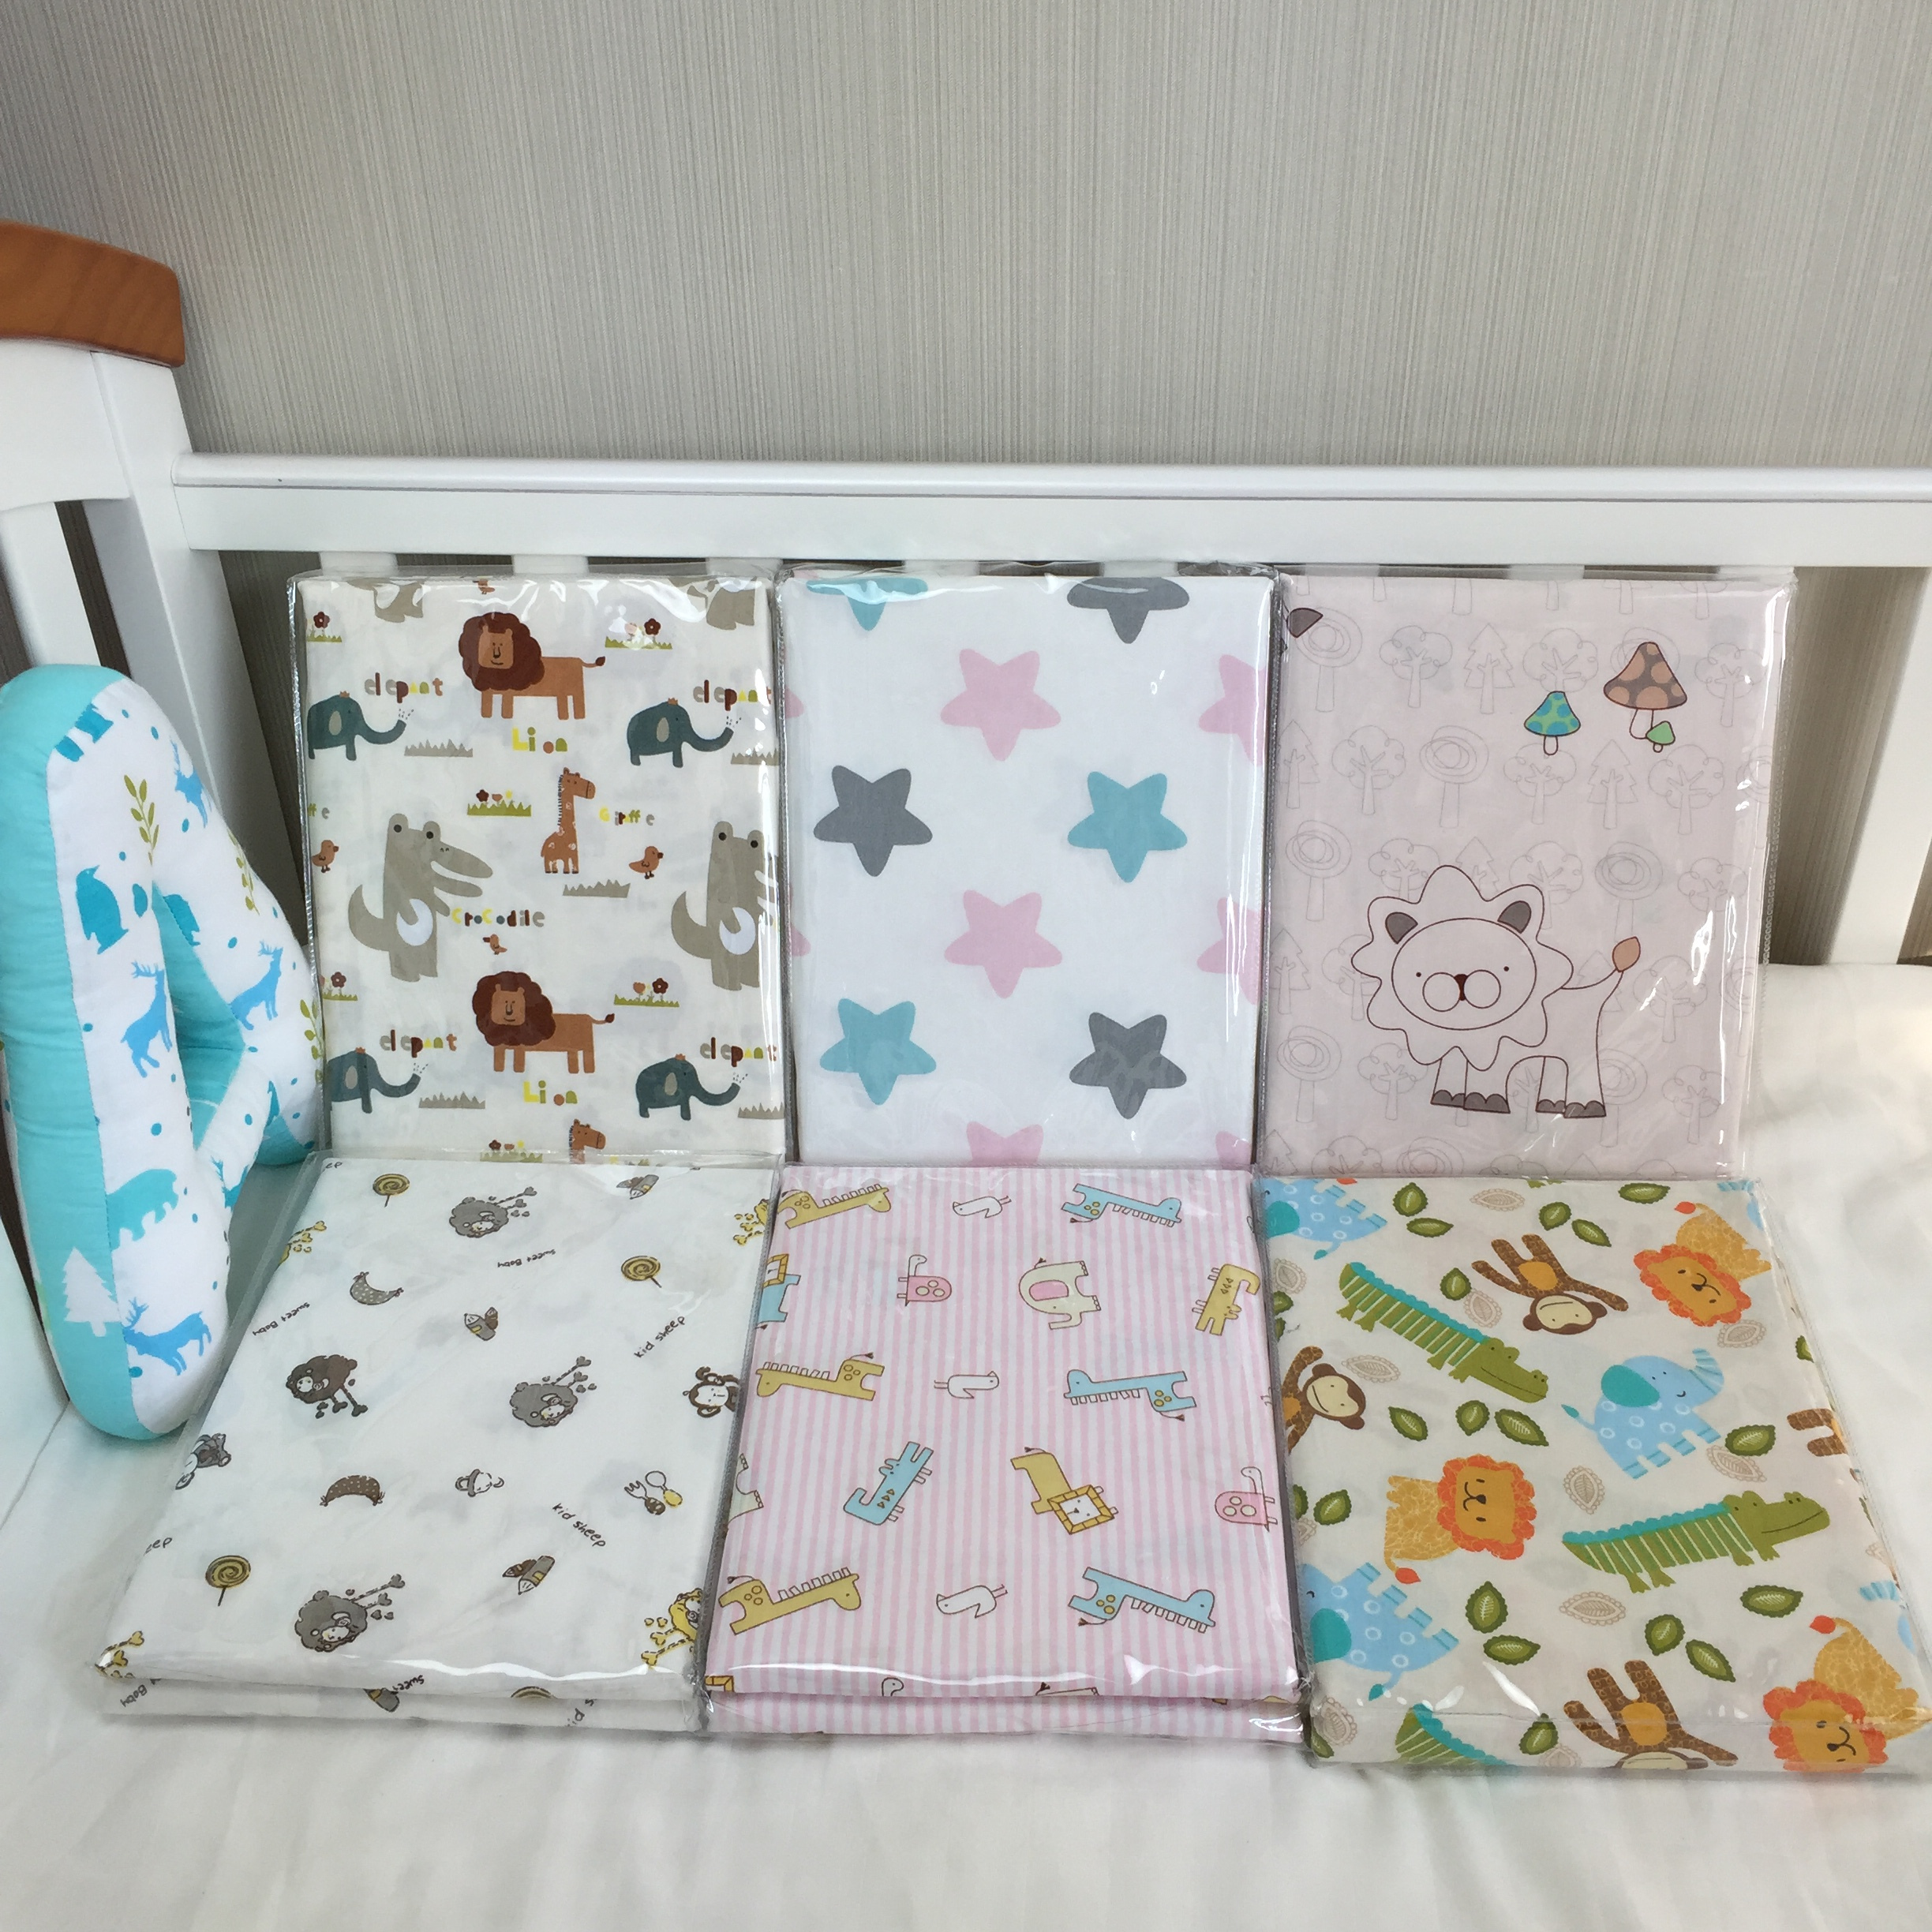 Patchwork bed sheets patterns - Baby Sheets Bed Newborn Cotton Cartoon Pattern Natural Printing Bed Sheets Children Favorite Comfort Crib Sheets